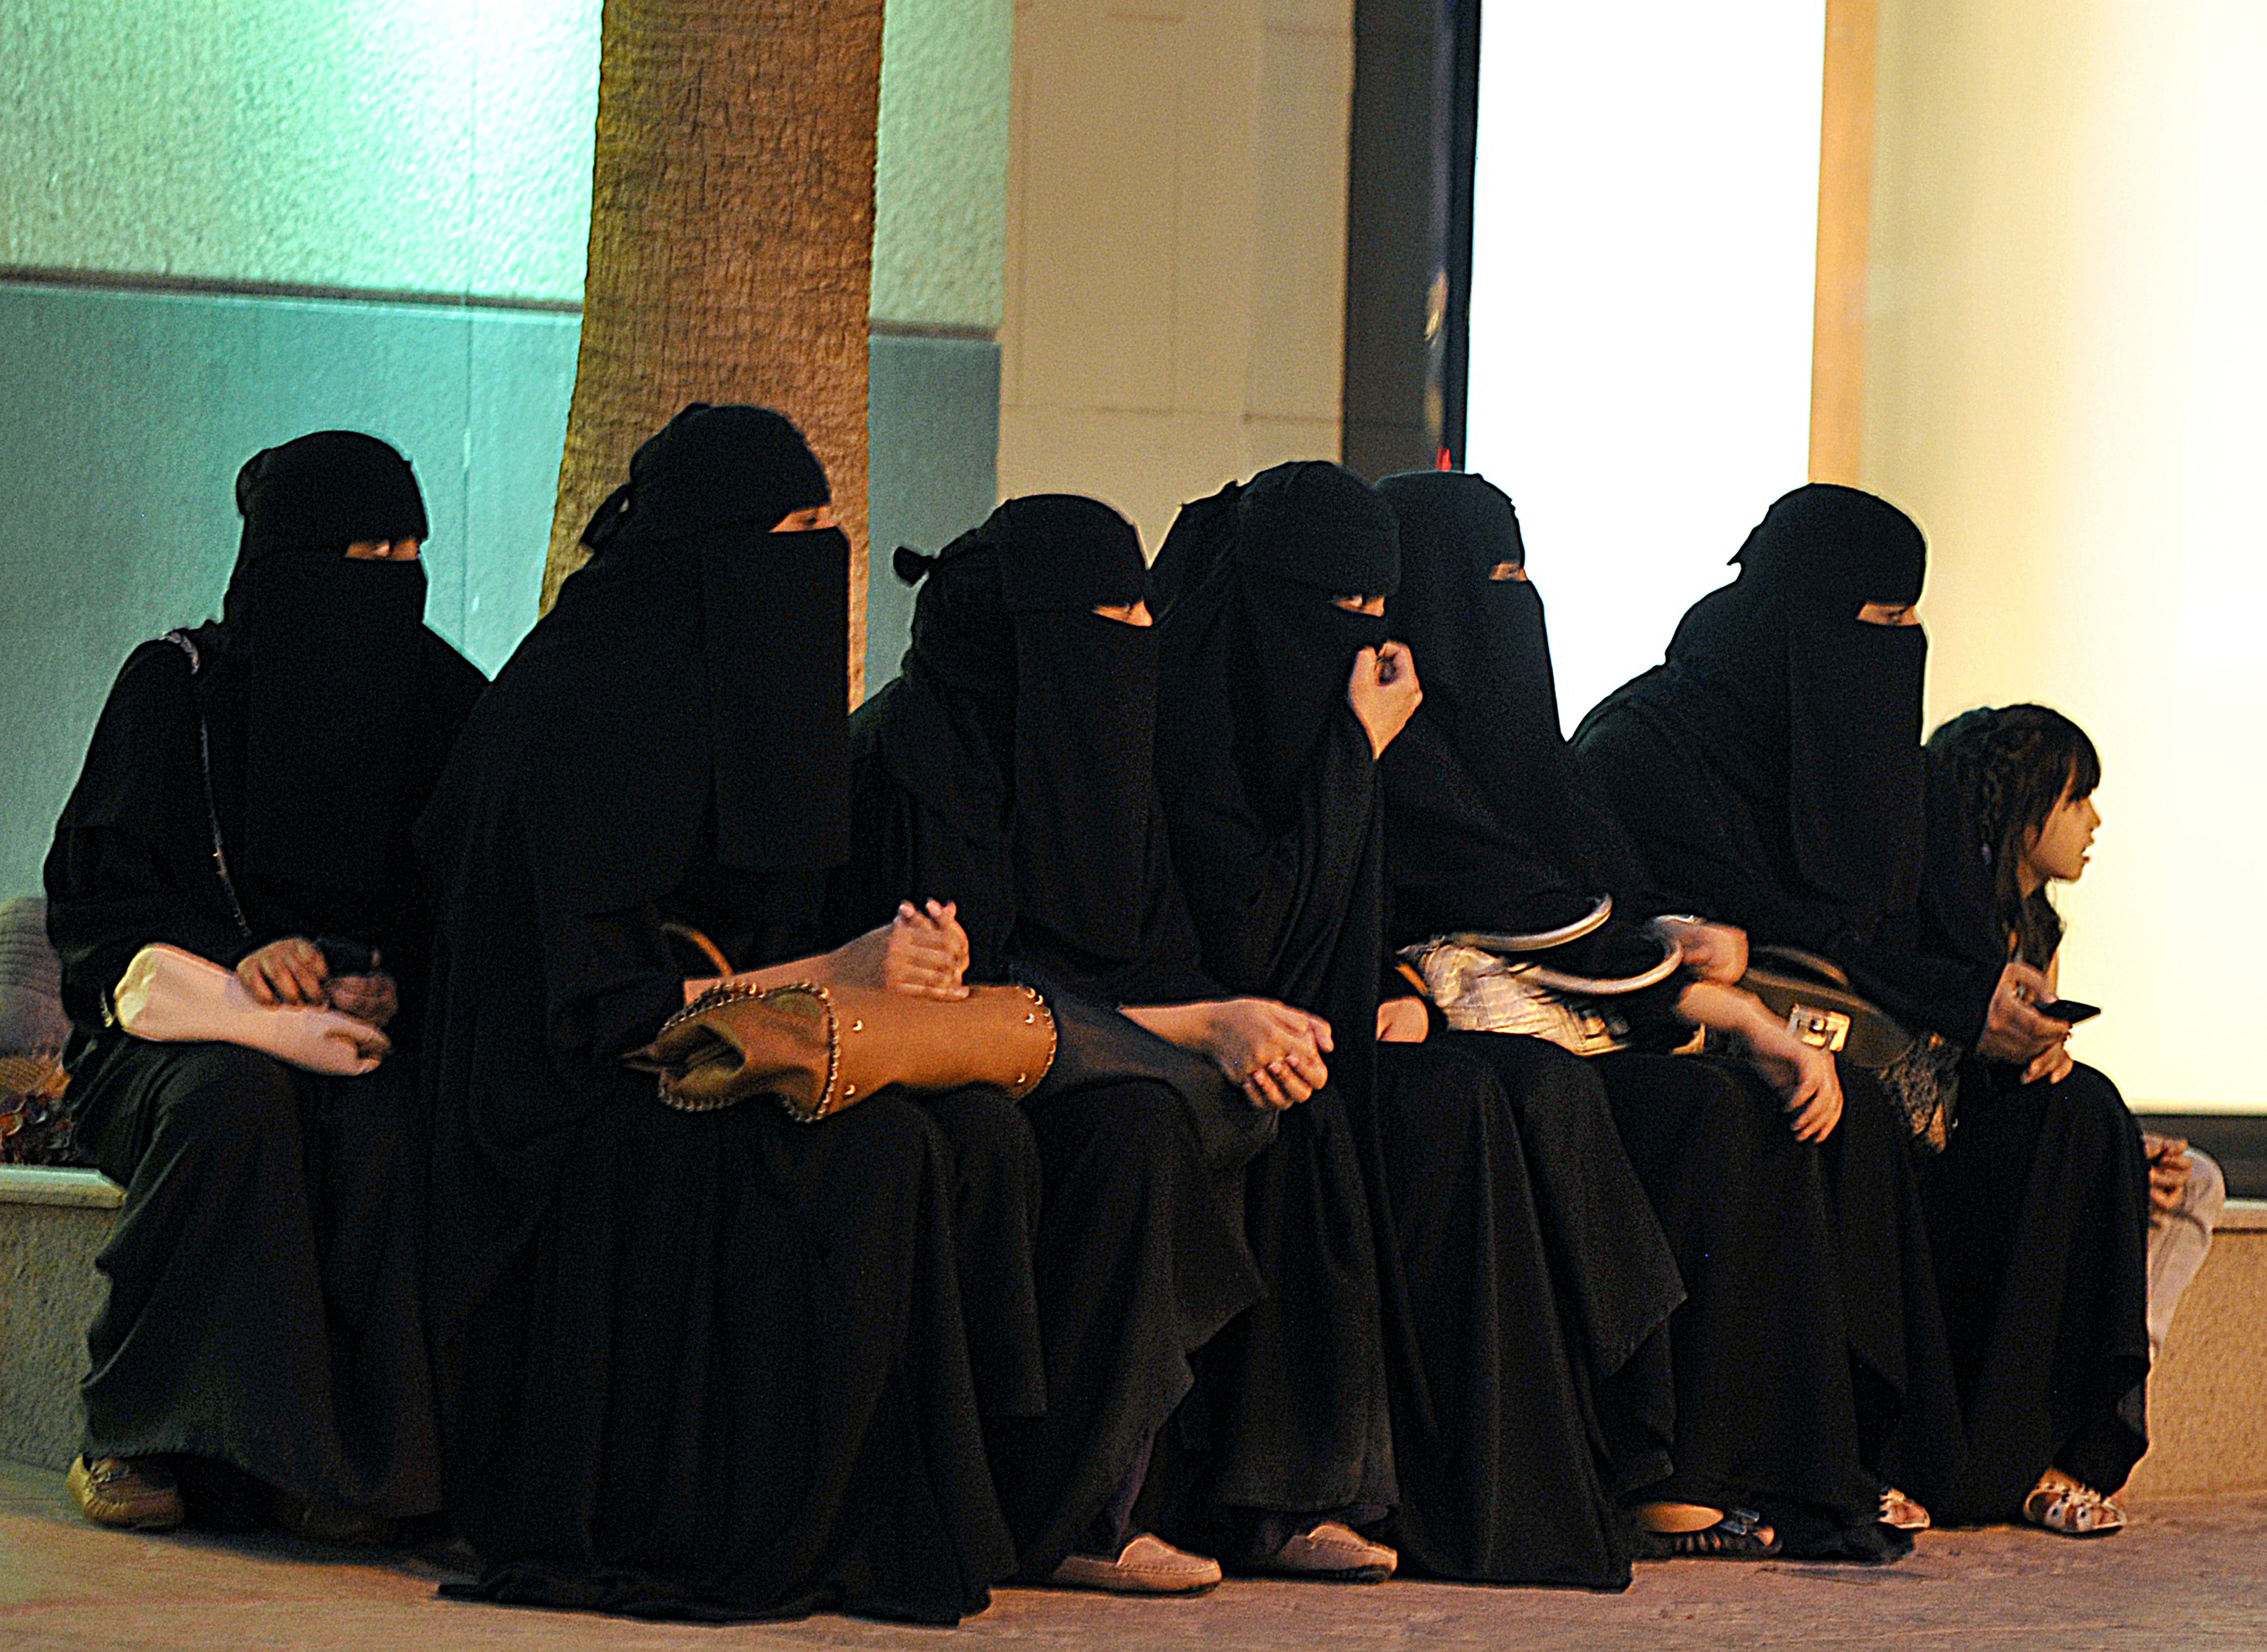 SAUDI-POLITICS-WOMEN-VOTE-RIGHTS